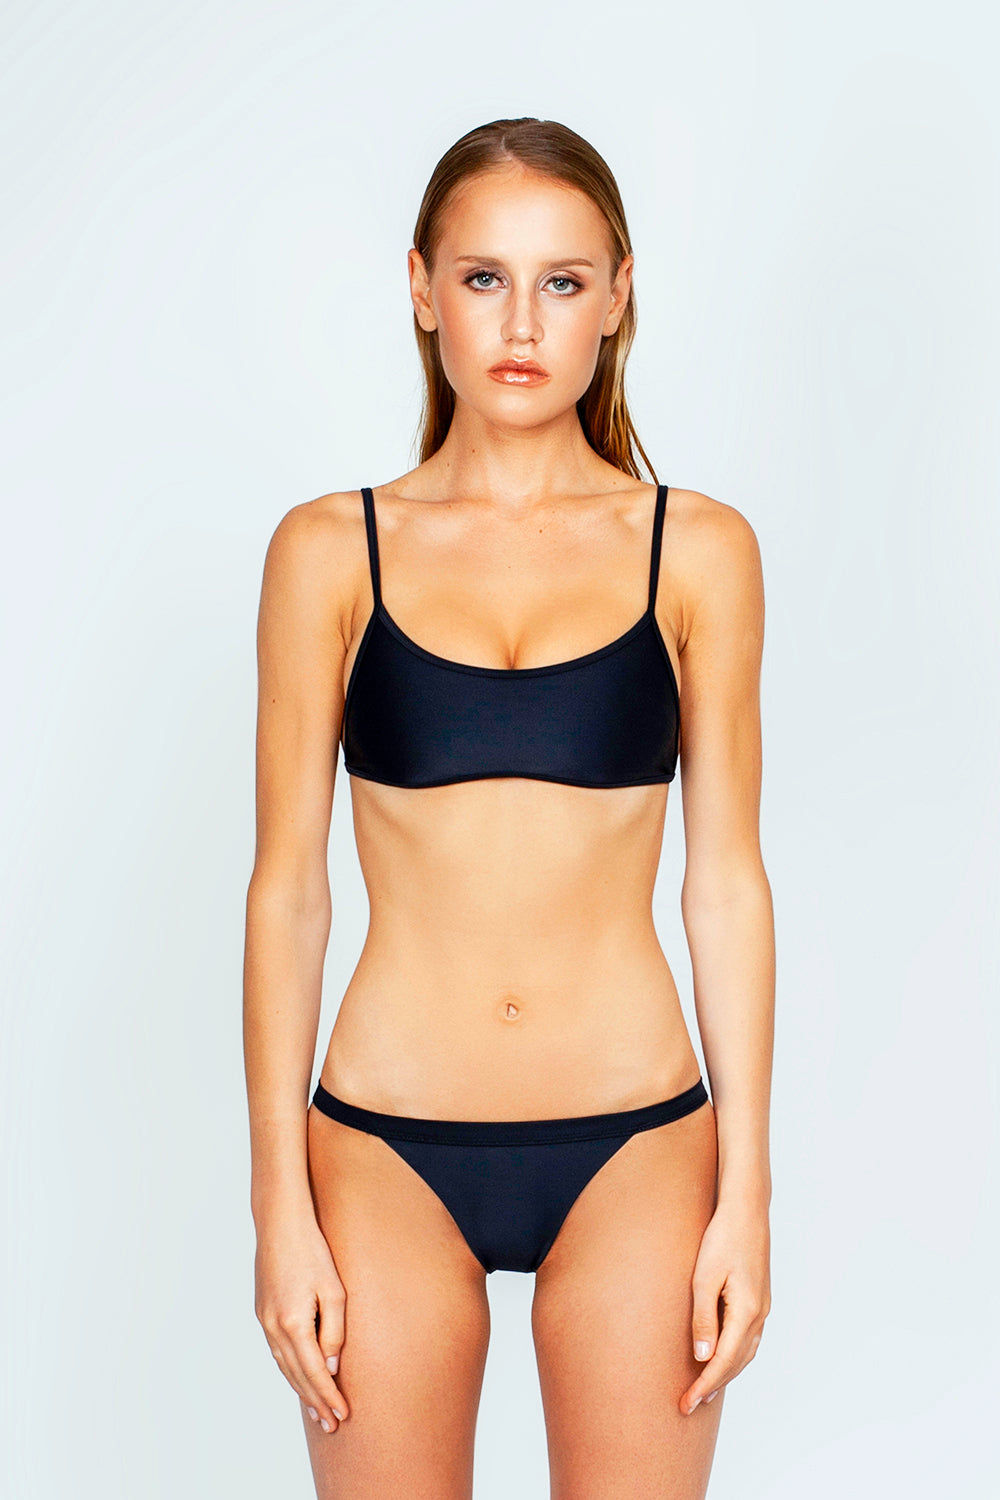 THE ONES WHO Ava Sporty Bikini Top - Black Bikini Top | Black| The Ones Who Ava Sporty Bikini Top - Black Sporty and minimal top Adjustable shoulder straps Self-tie back Fully lined with no cups Made in LA  Fabric: 80% Nylon 20% Elastane Front View